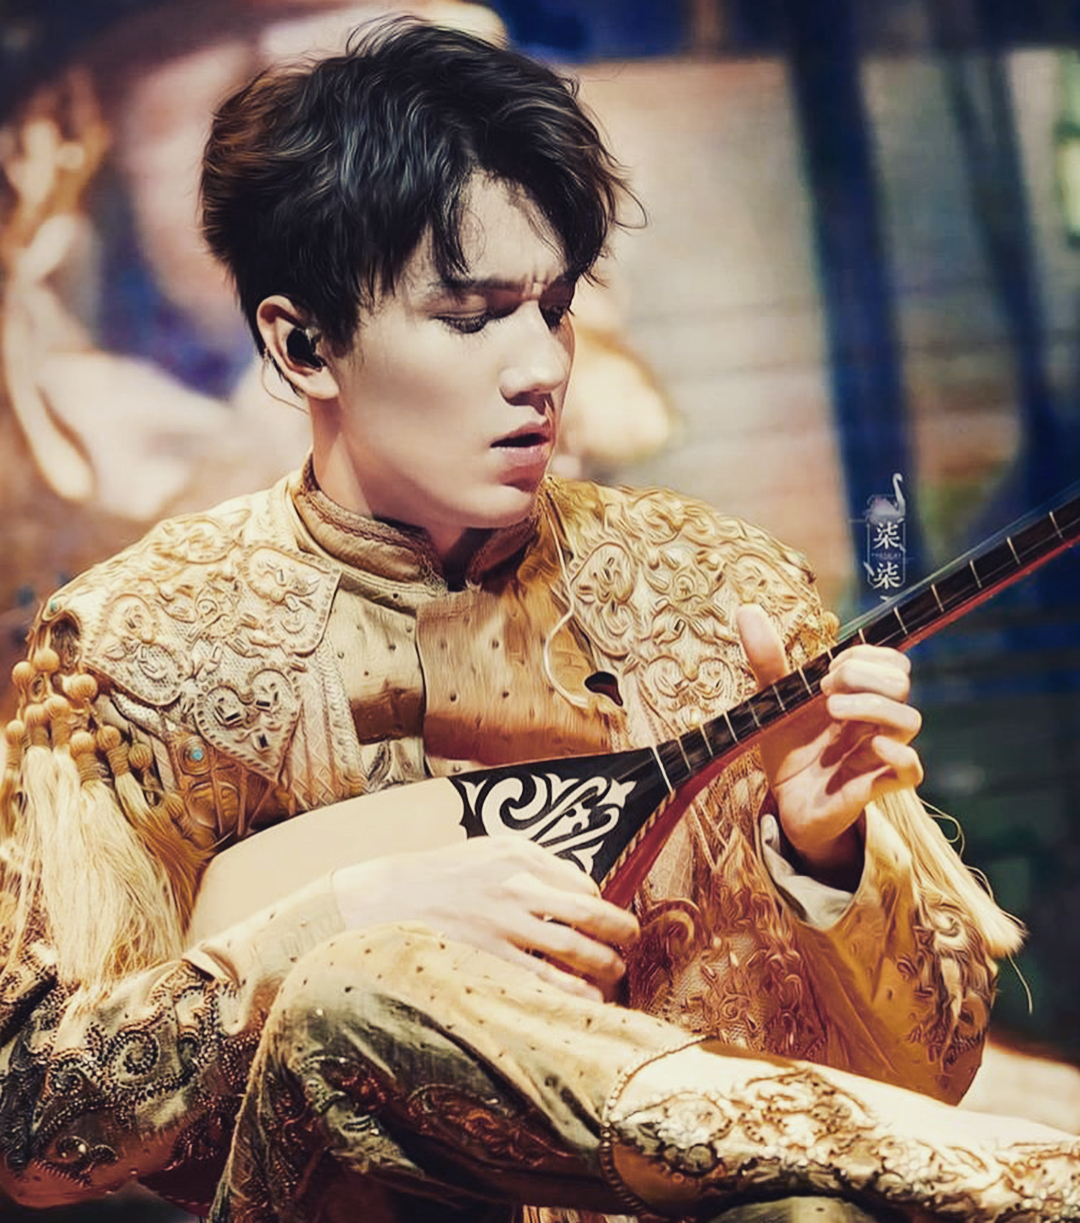 Dimash Kudaibergen holding oud in his hands while wearing golden colored attire